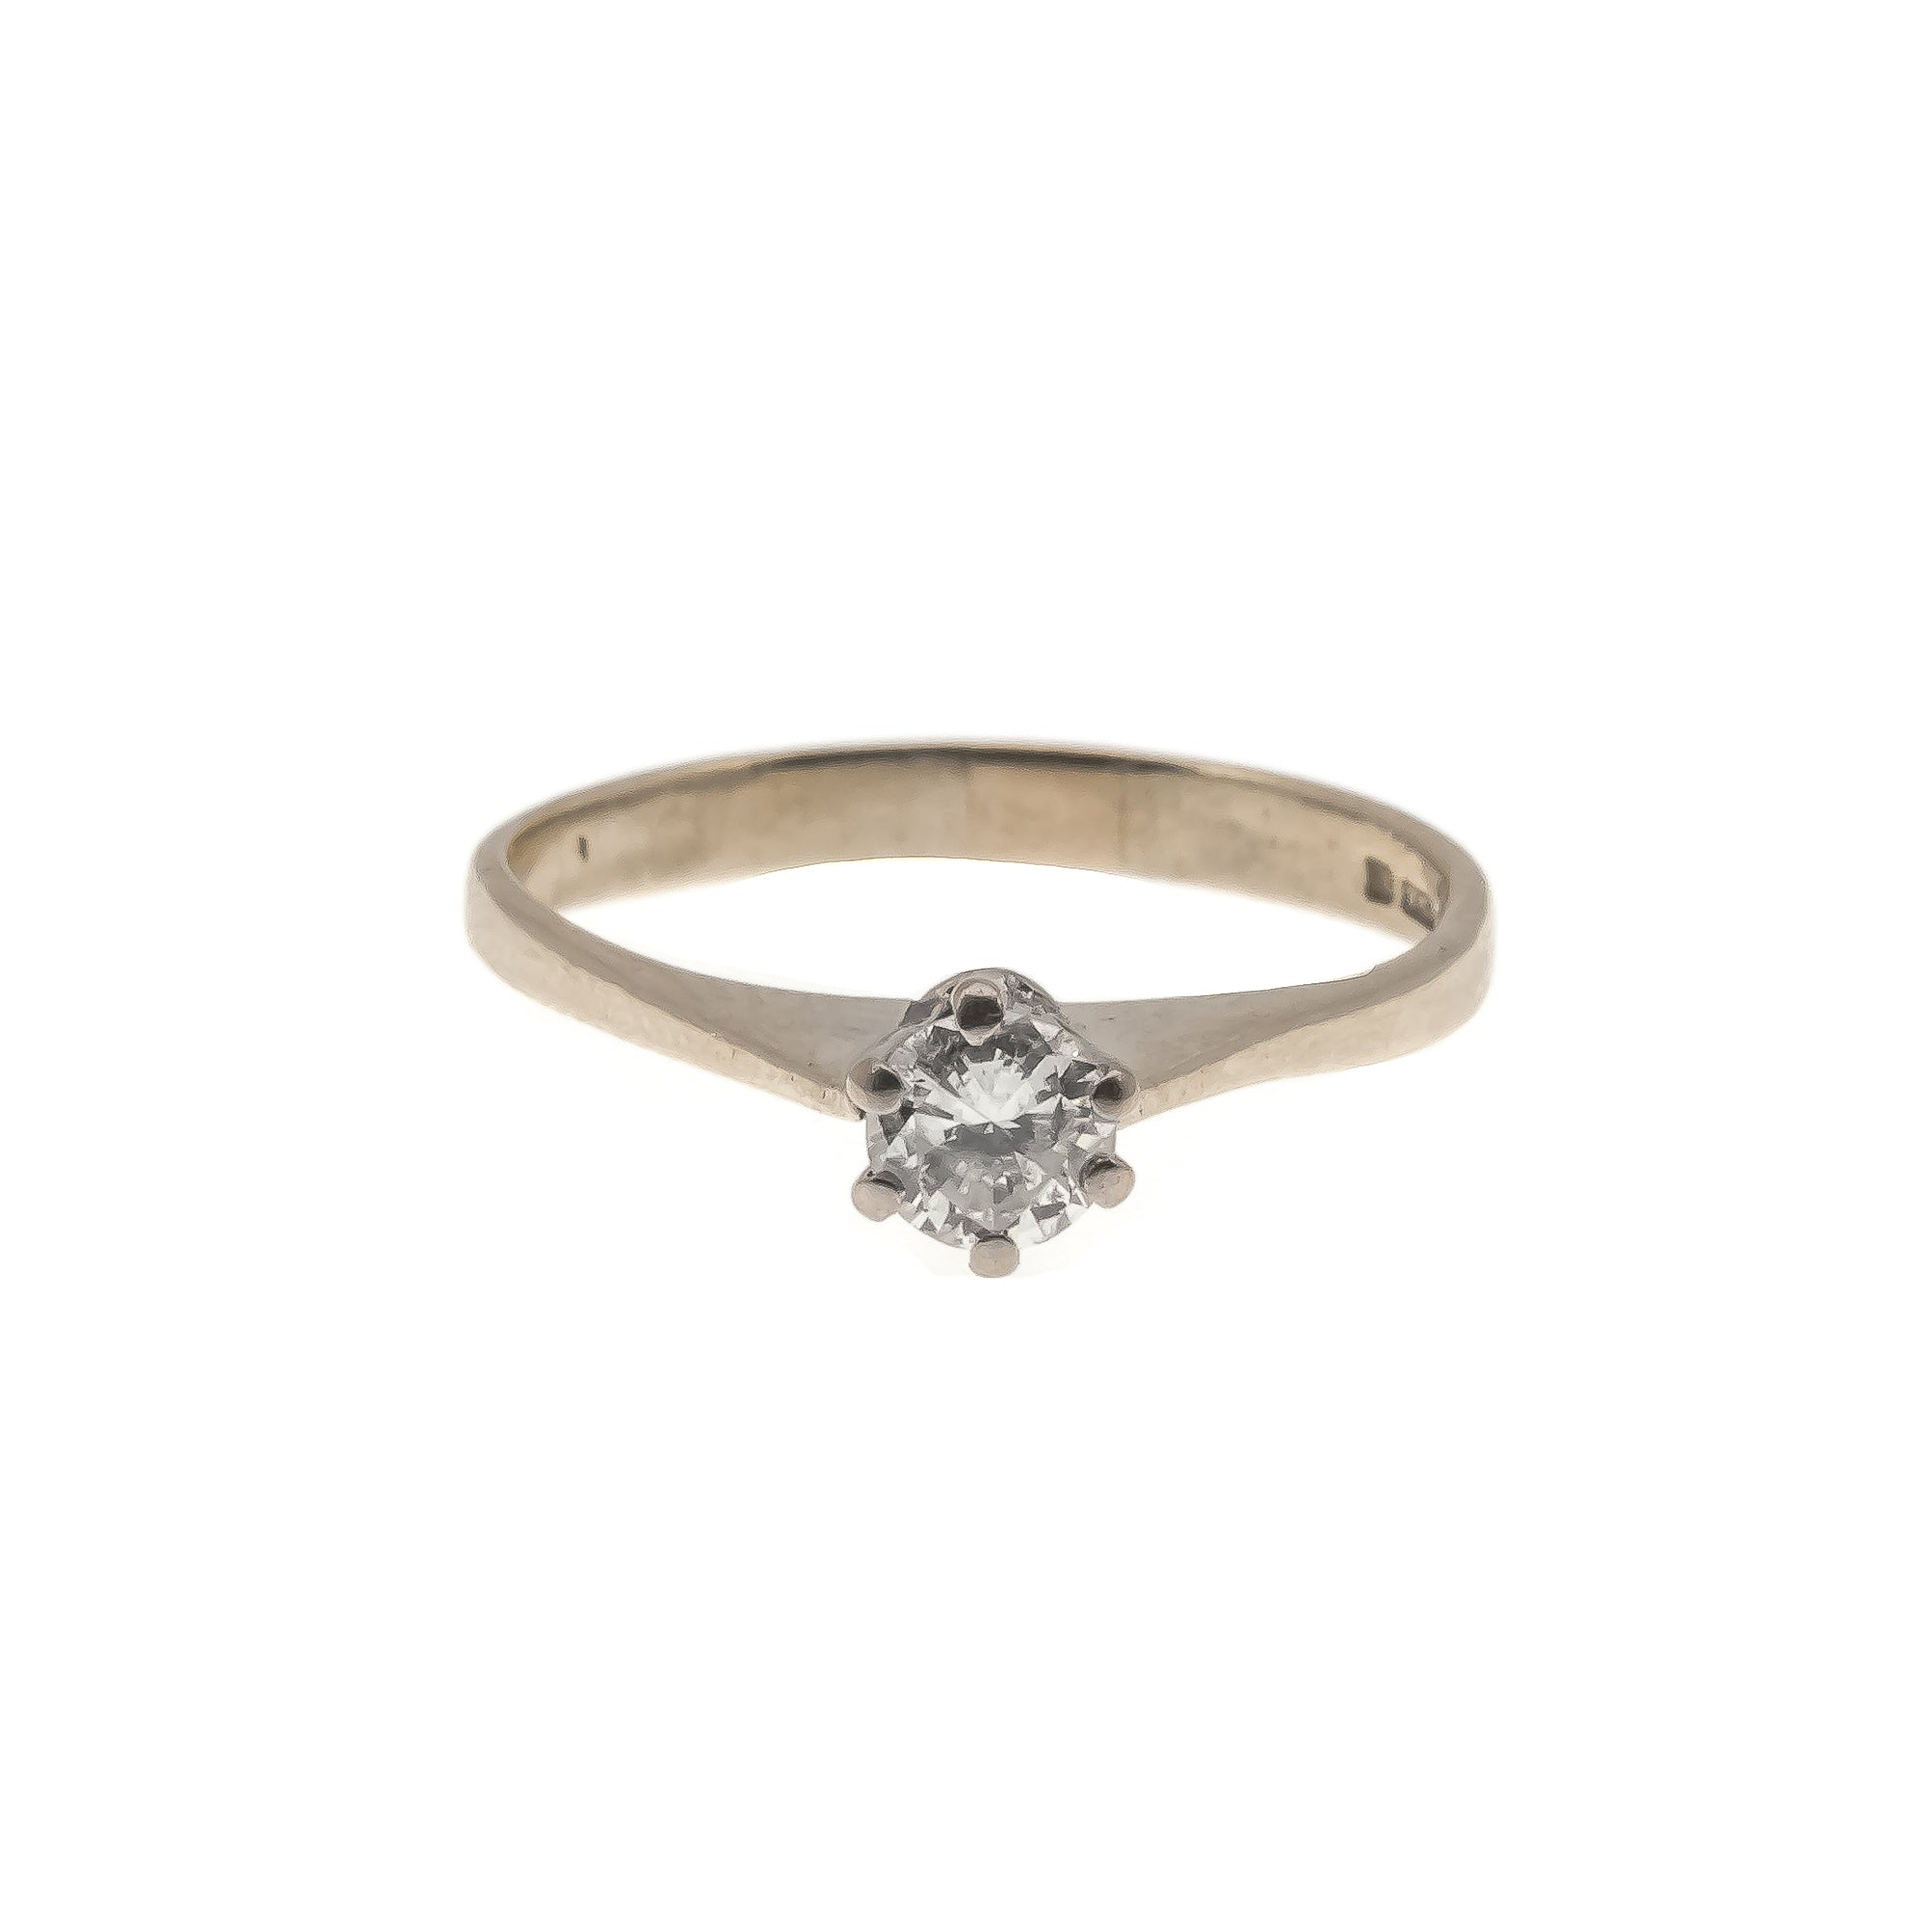 Everlasting Promise - Vintage 18K Diamond Solitaire Cathedral Ring (VR296)